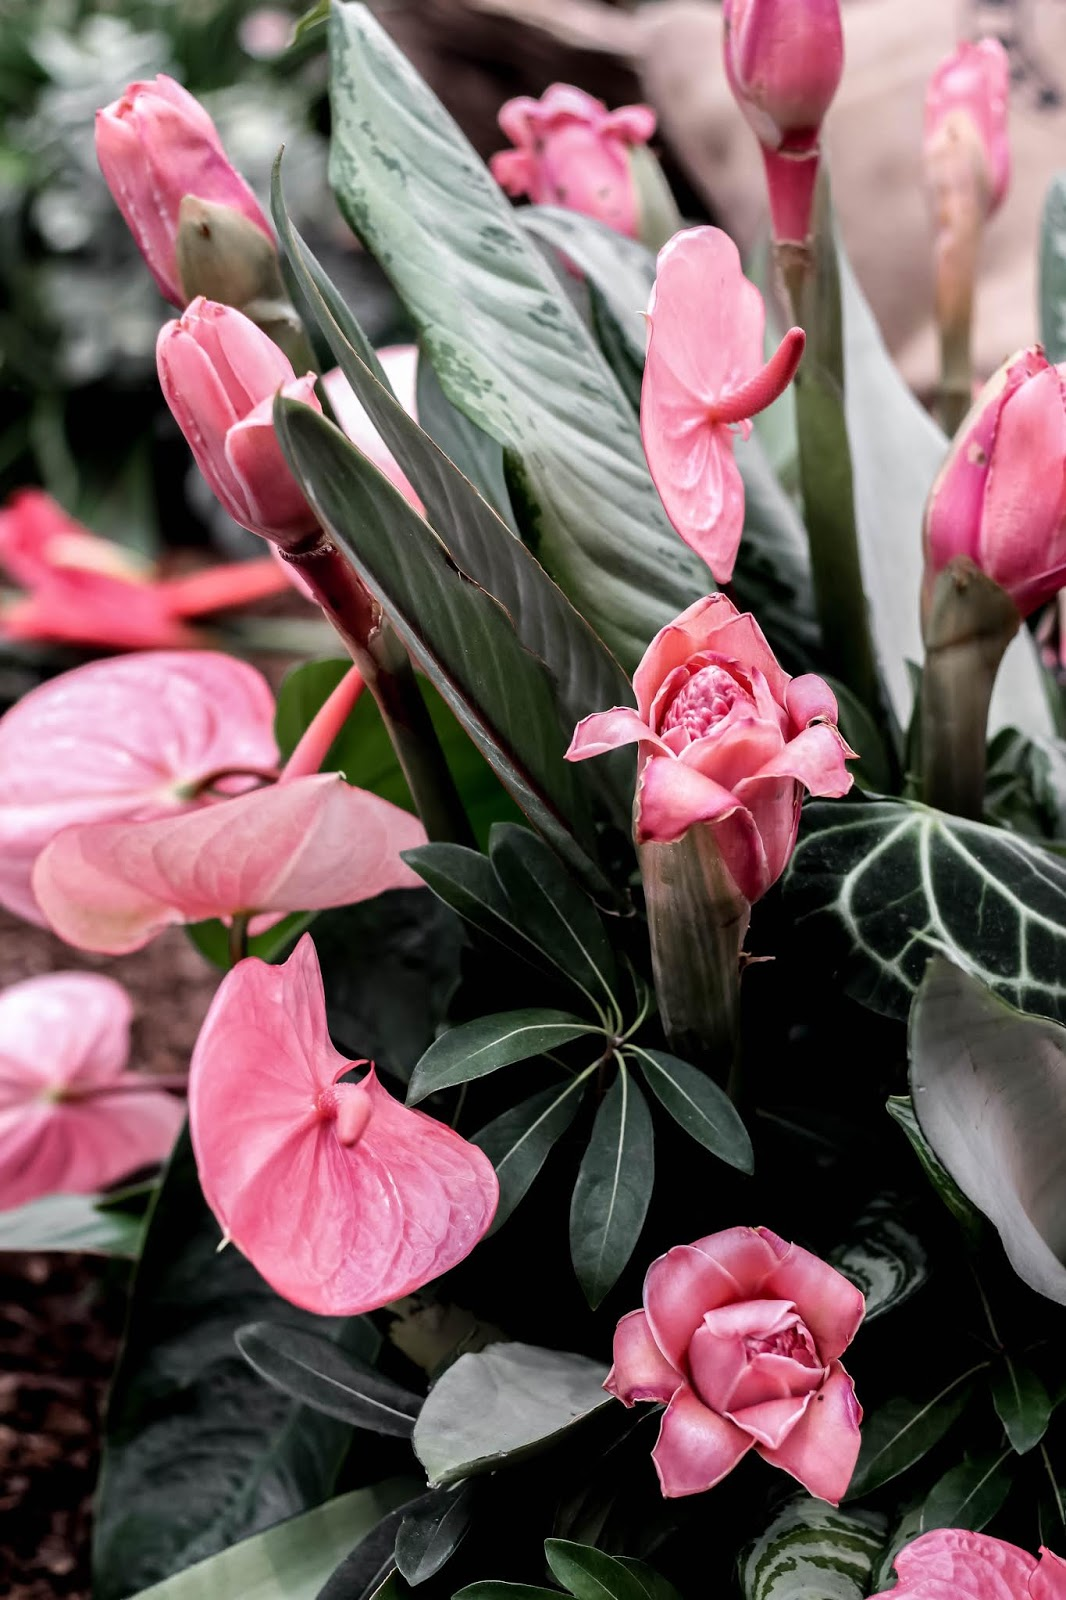 Tropical Pink Flowers at the Chelsea Flower Show 2018